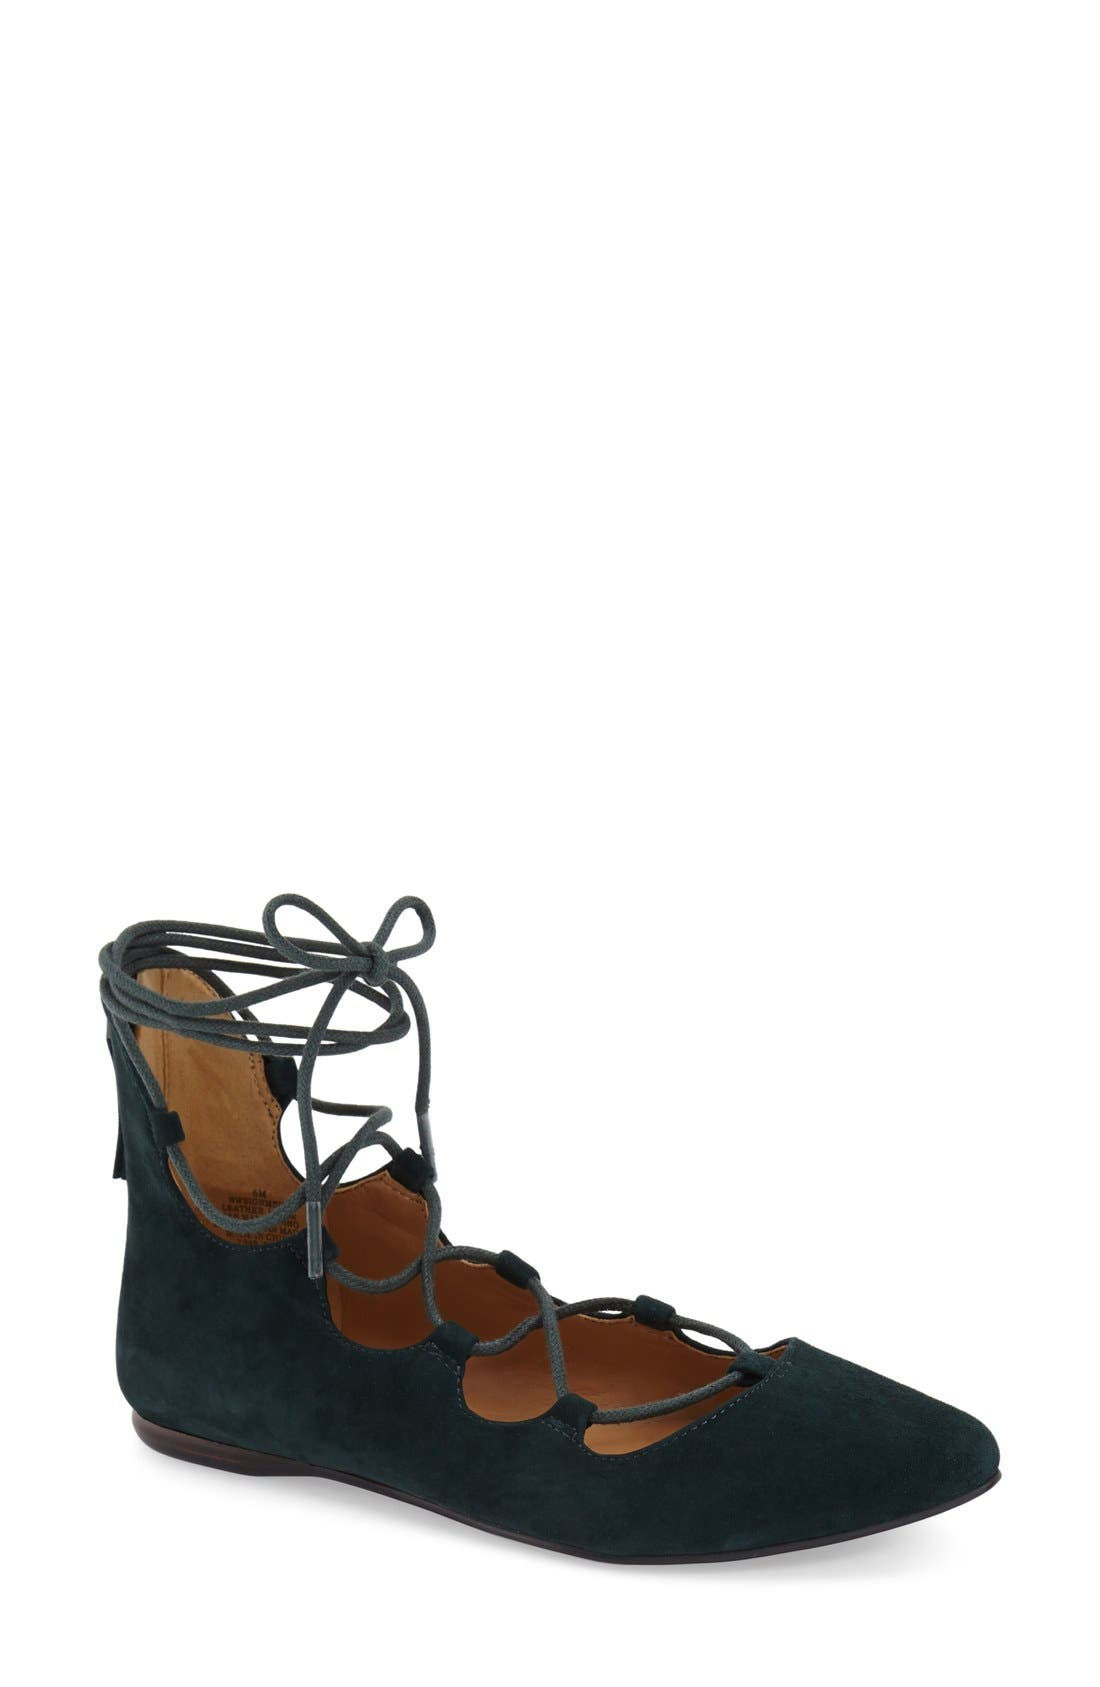 'Sign Me Up' Ghillie Flat,                             Main thumbnail 1, color,                             Dark Green Suede